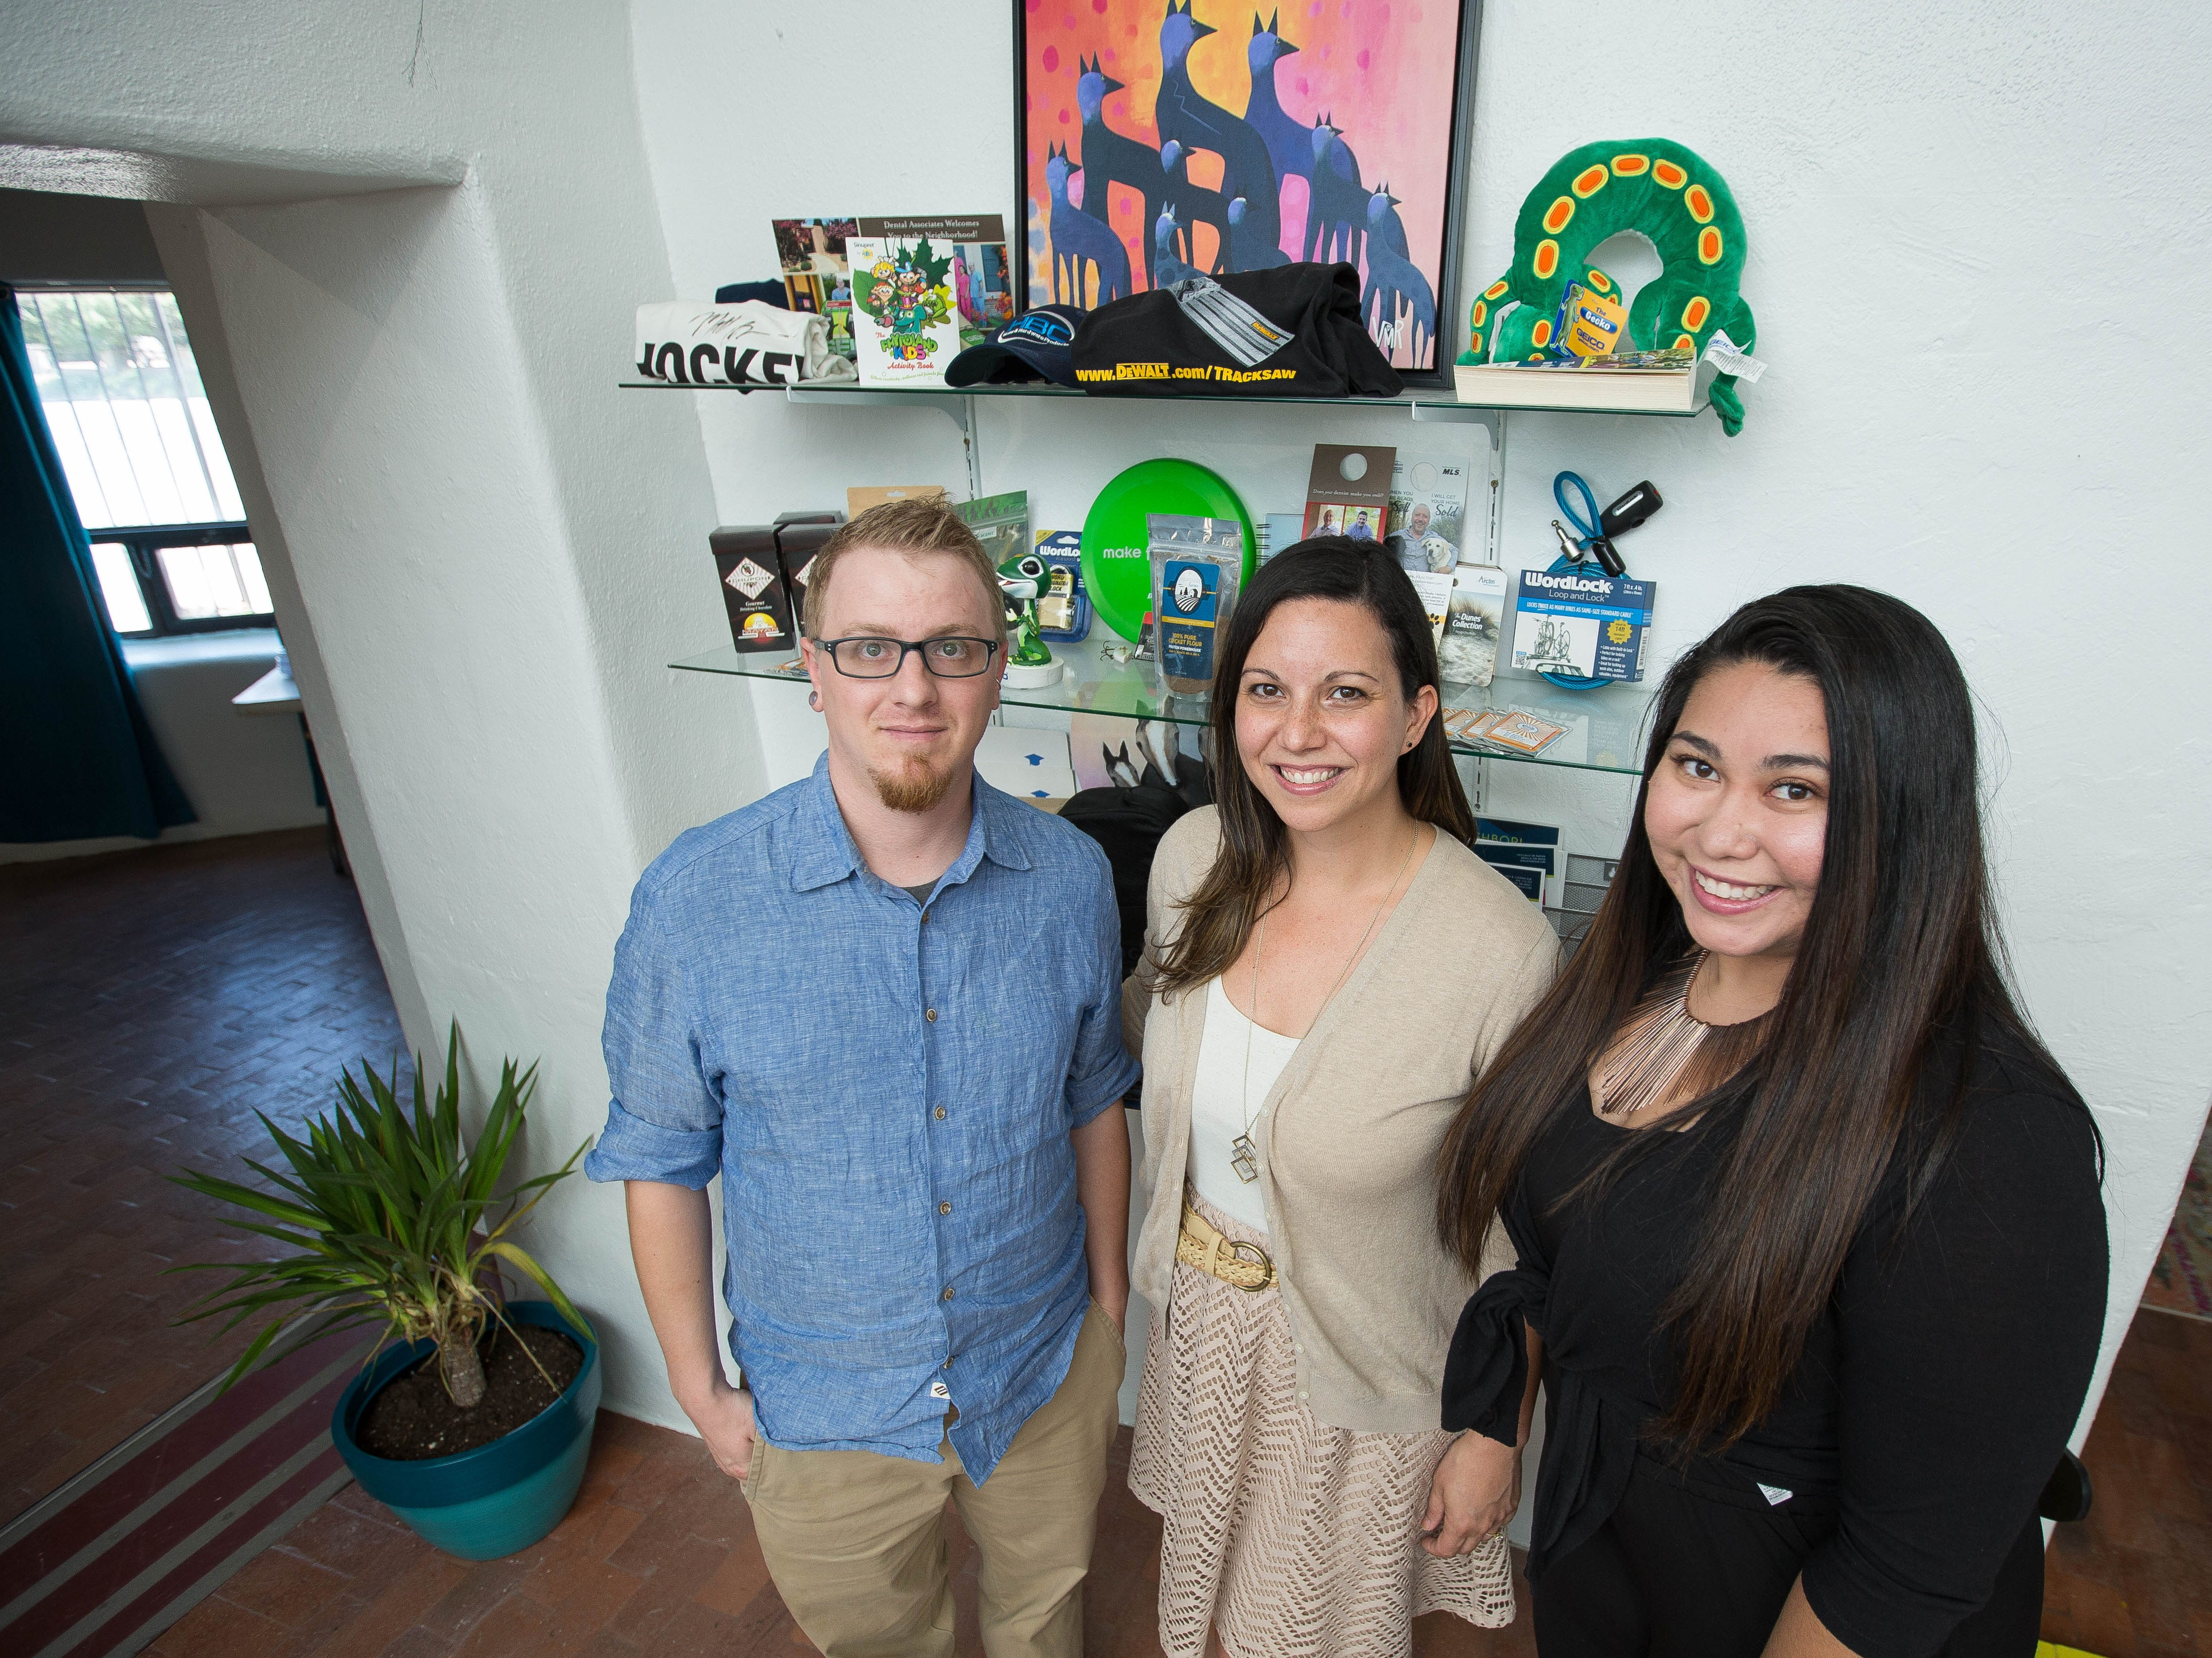 Joe Sutton, left, account executive with Sinuate Media; Leah Messina, center, CEO of Sinuate Media; and Isabella Pedicone, marketing manager for Sinuate Media; show off their new offices in Mesilla on Friday, Aug. 31, 2018.